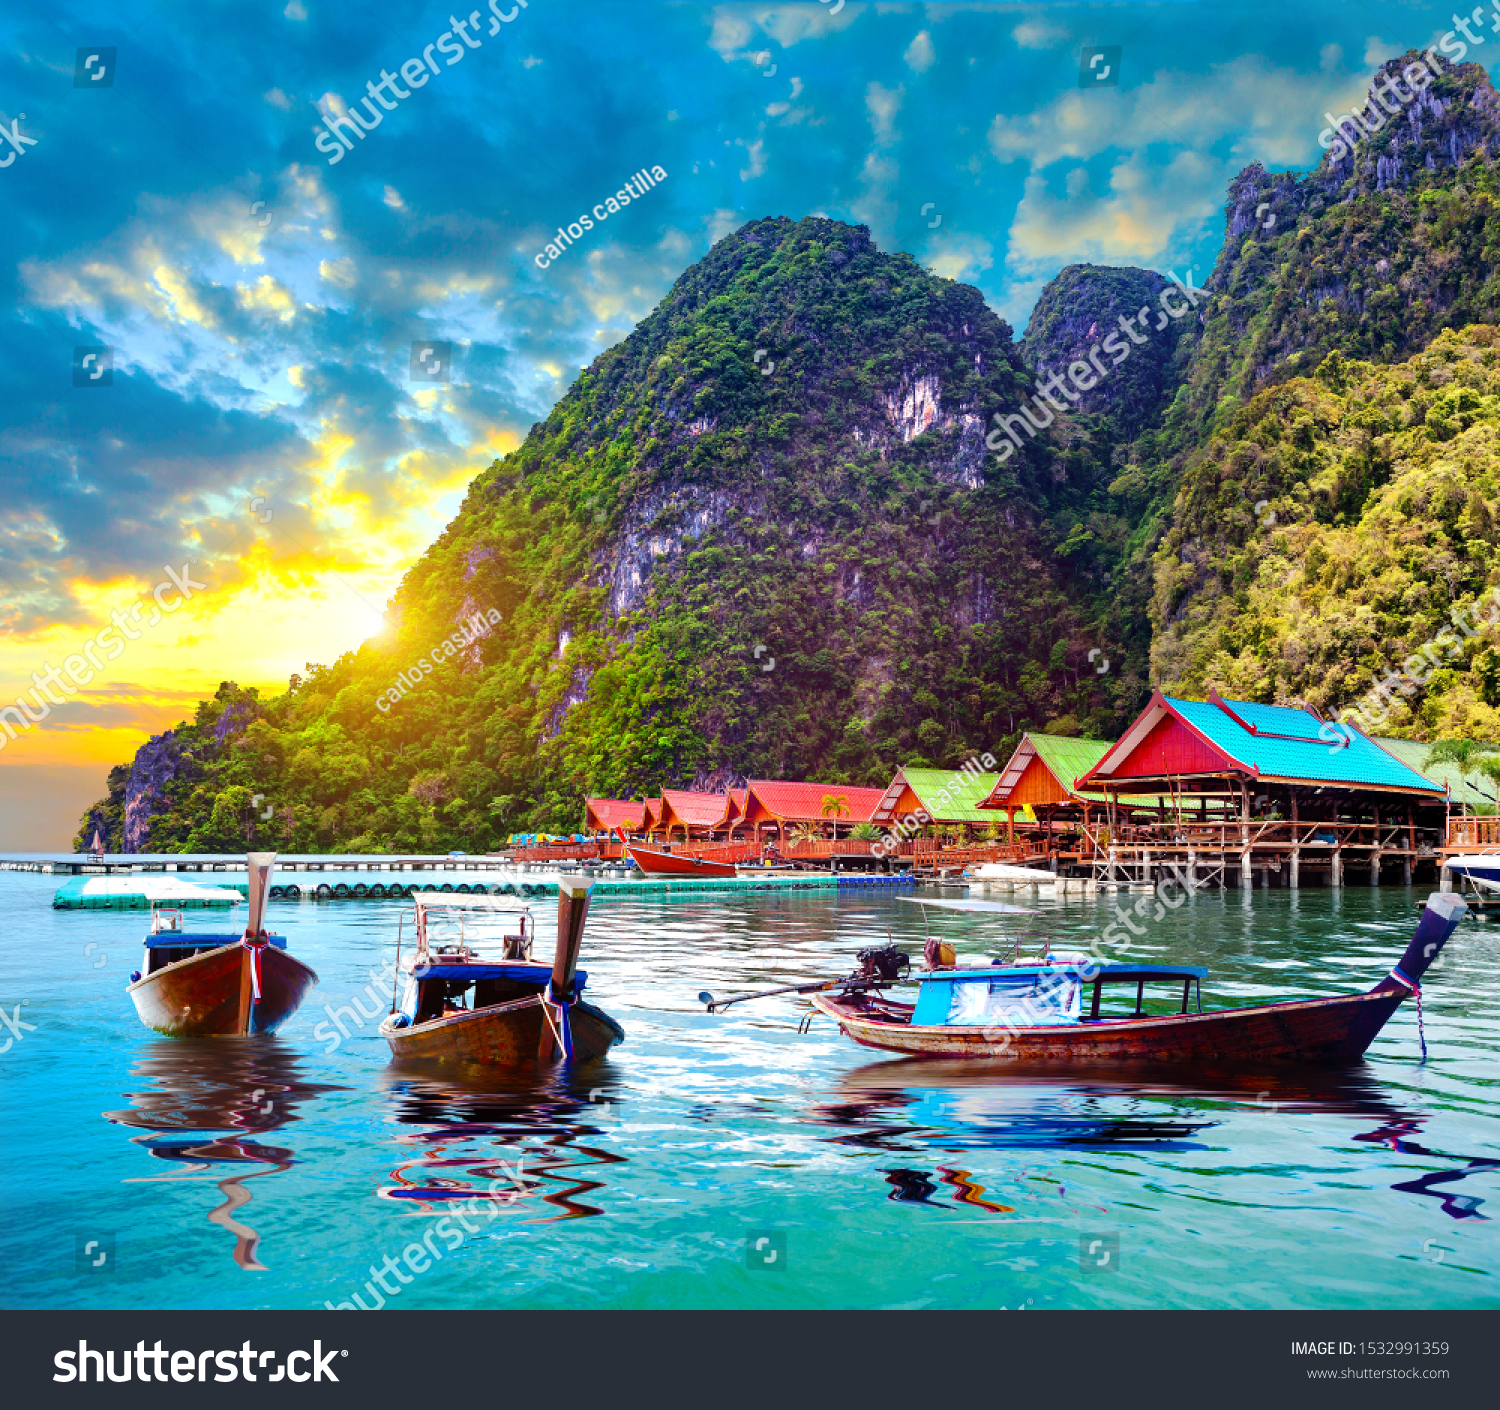 Scenic Phuket landscape.Seascape and paradisiacal  idyllic beach. Scenery Thailand sea and island .Adventures and exotic travel concept #1532991359